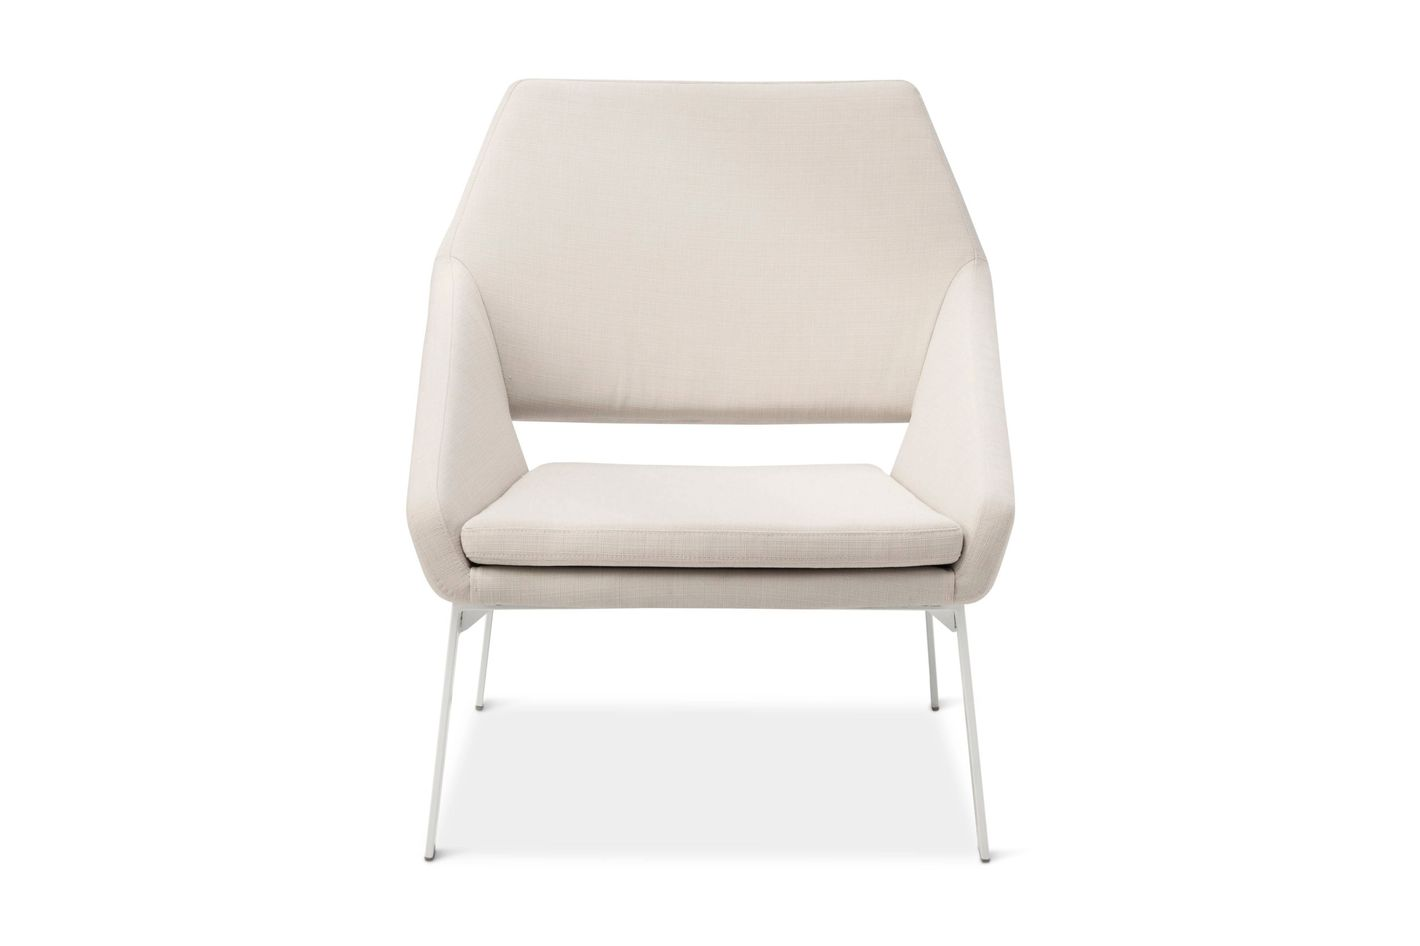 Modern by Dwell Magazine Lounge Chair White/Natural